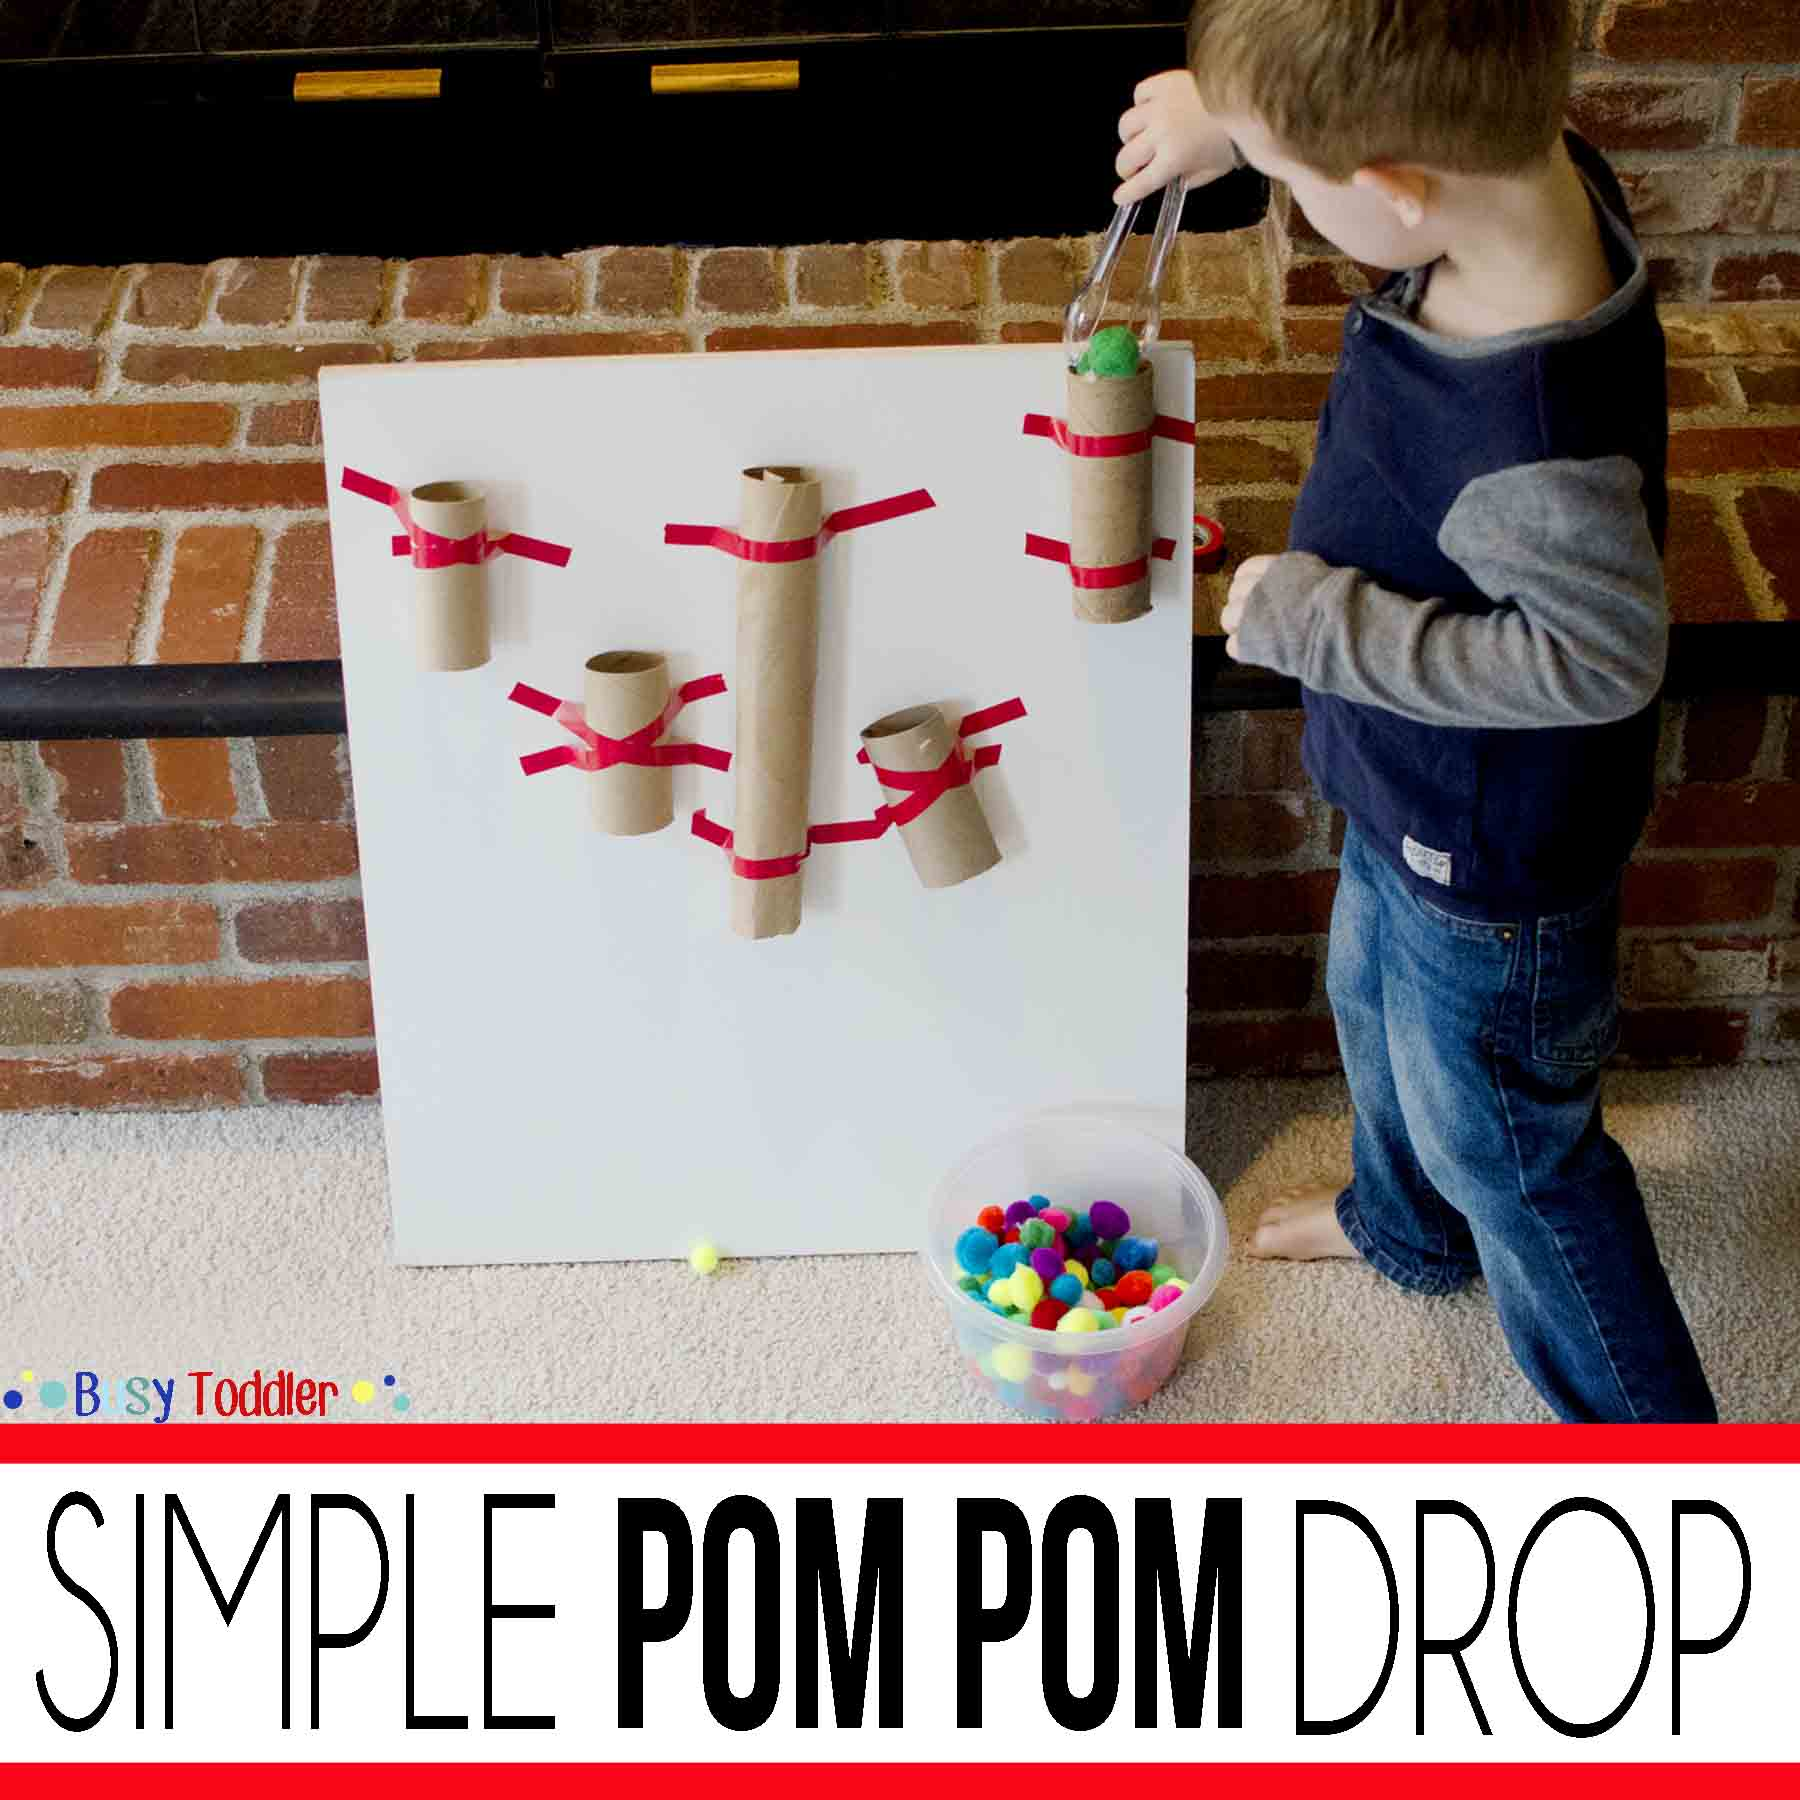 SIMPLE POM POM DROP: Create an easy toddler activity using recycled toilet paper tubes. Toddlers will love this fun play activity.